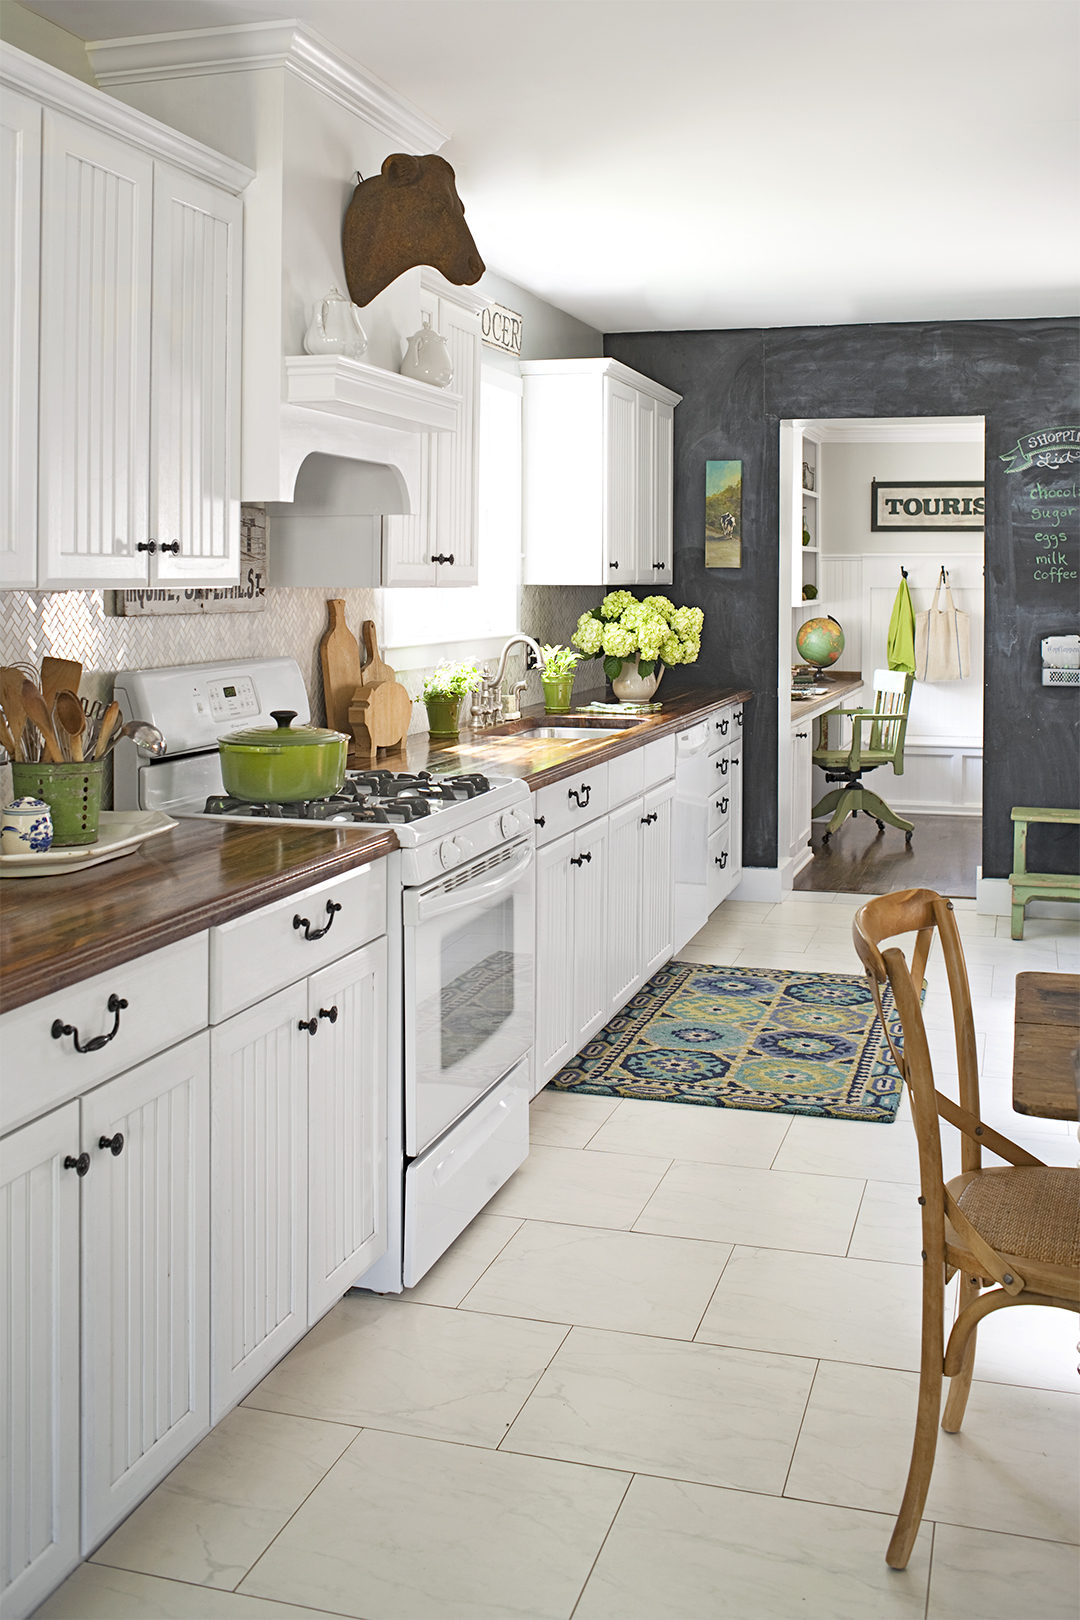 white kitchen with bead board cabinets and wooden countertops